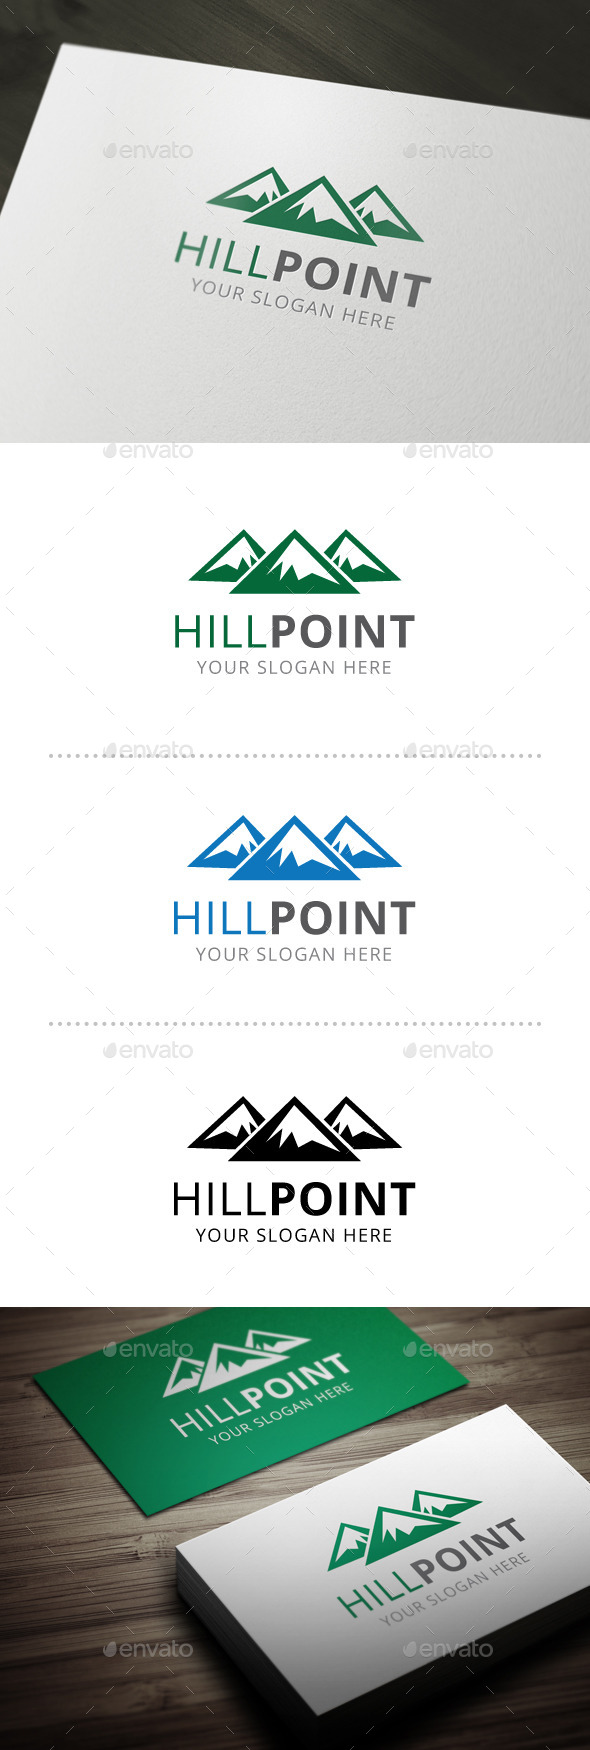 GraphicRiver Hill Point Logo Template 10664027